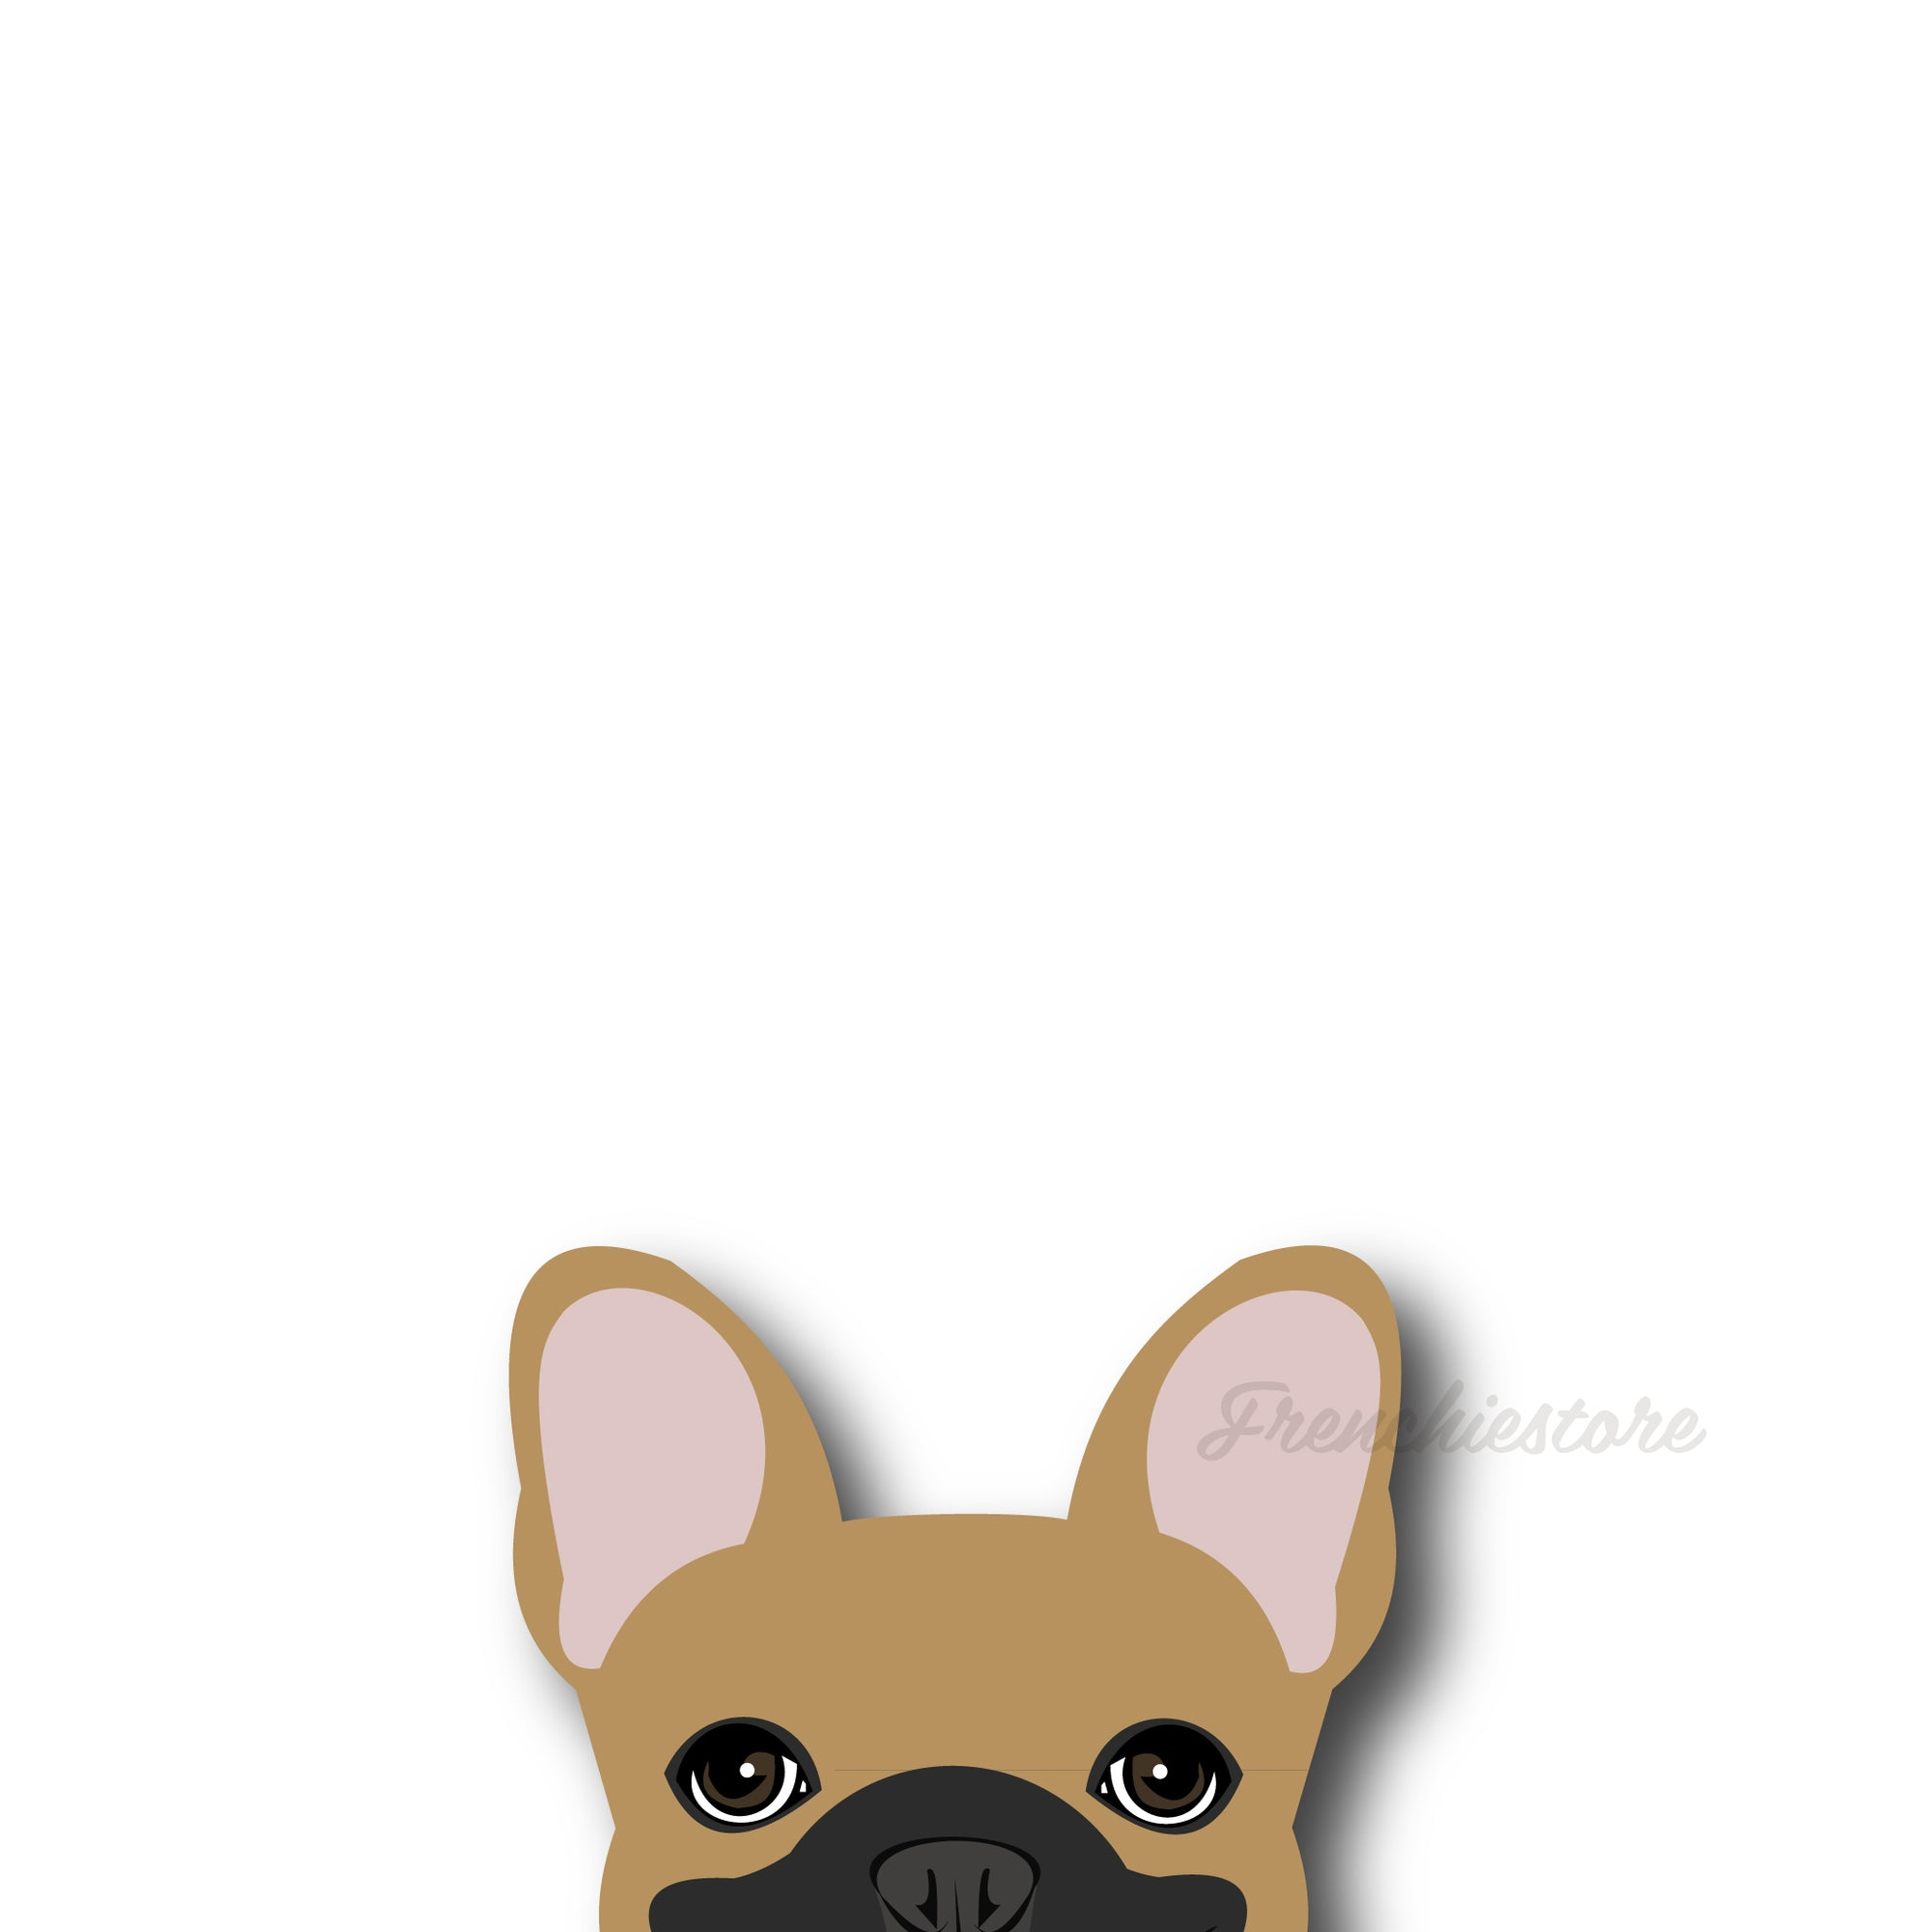 Autocollant Frenchie | Frenchiestore | Sticker Voiture Fauve W / Masque Bouledogue Français